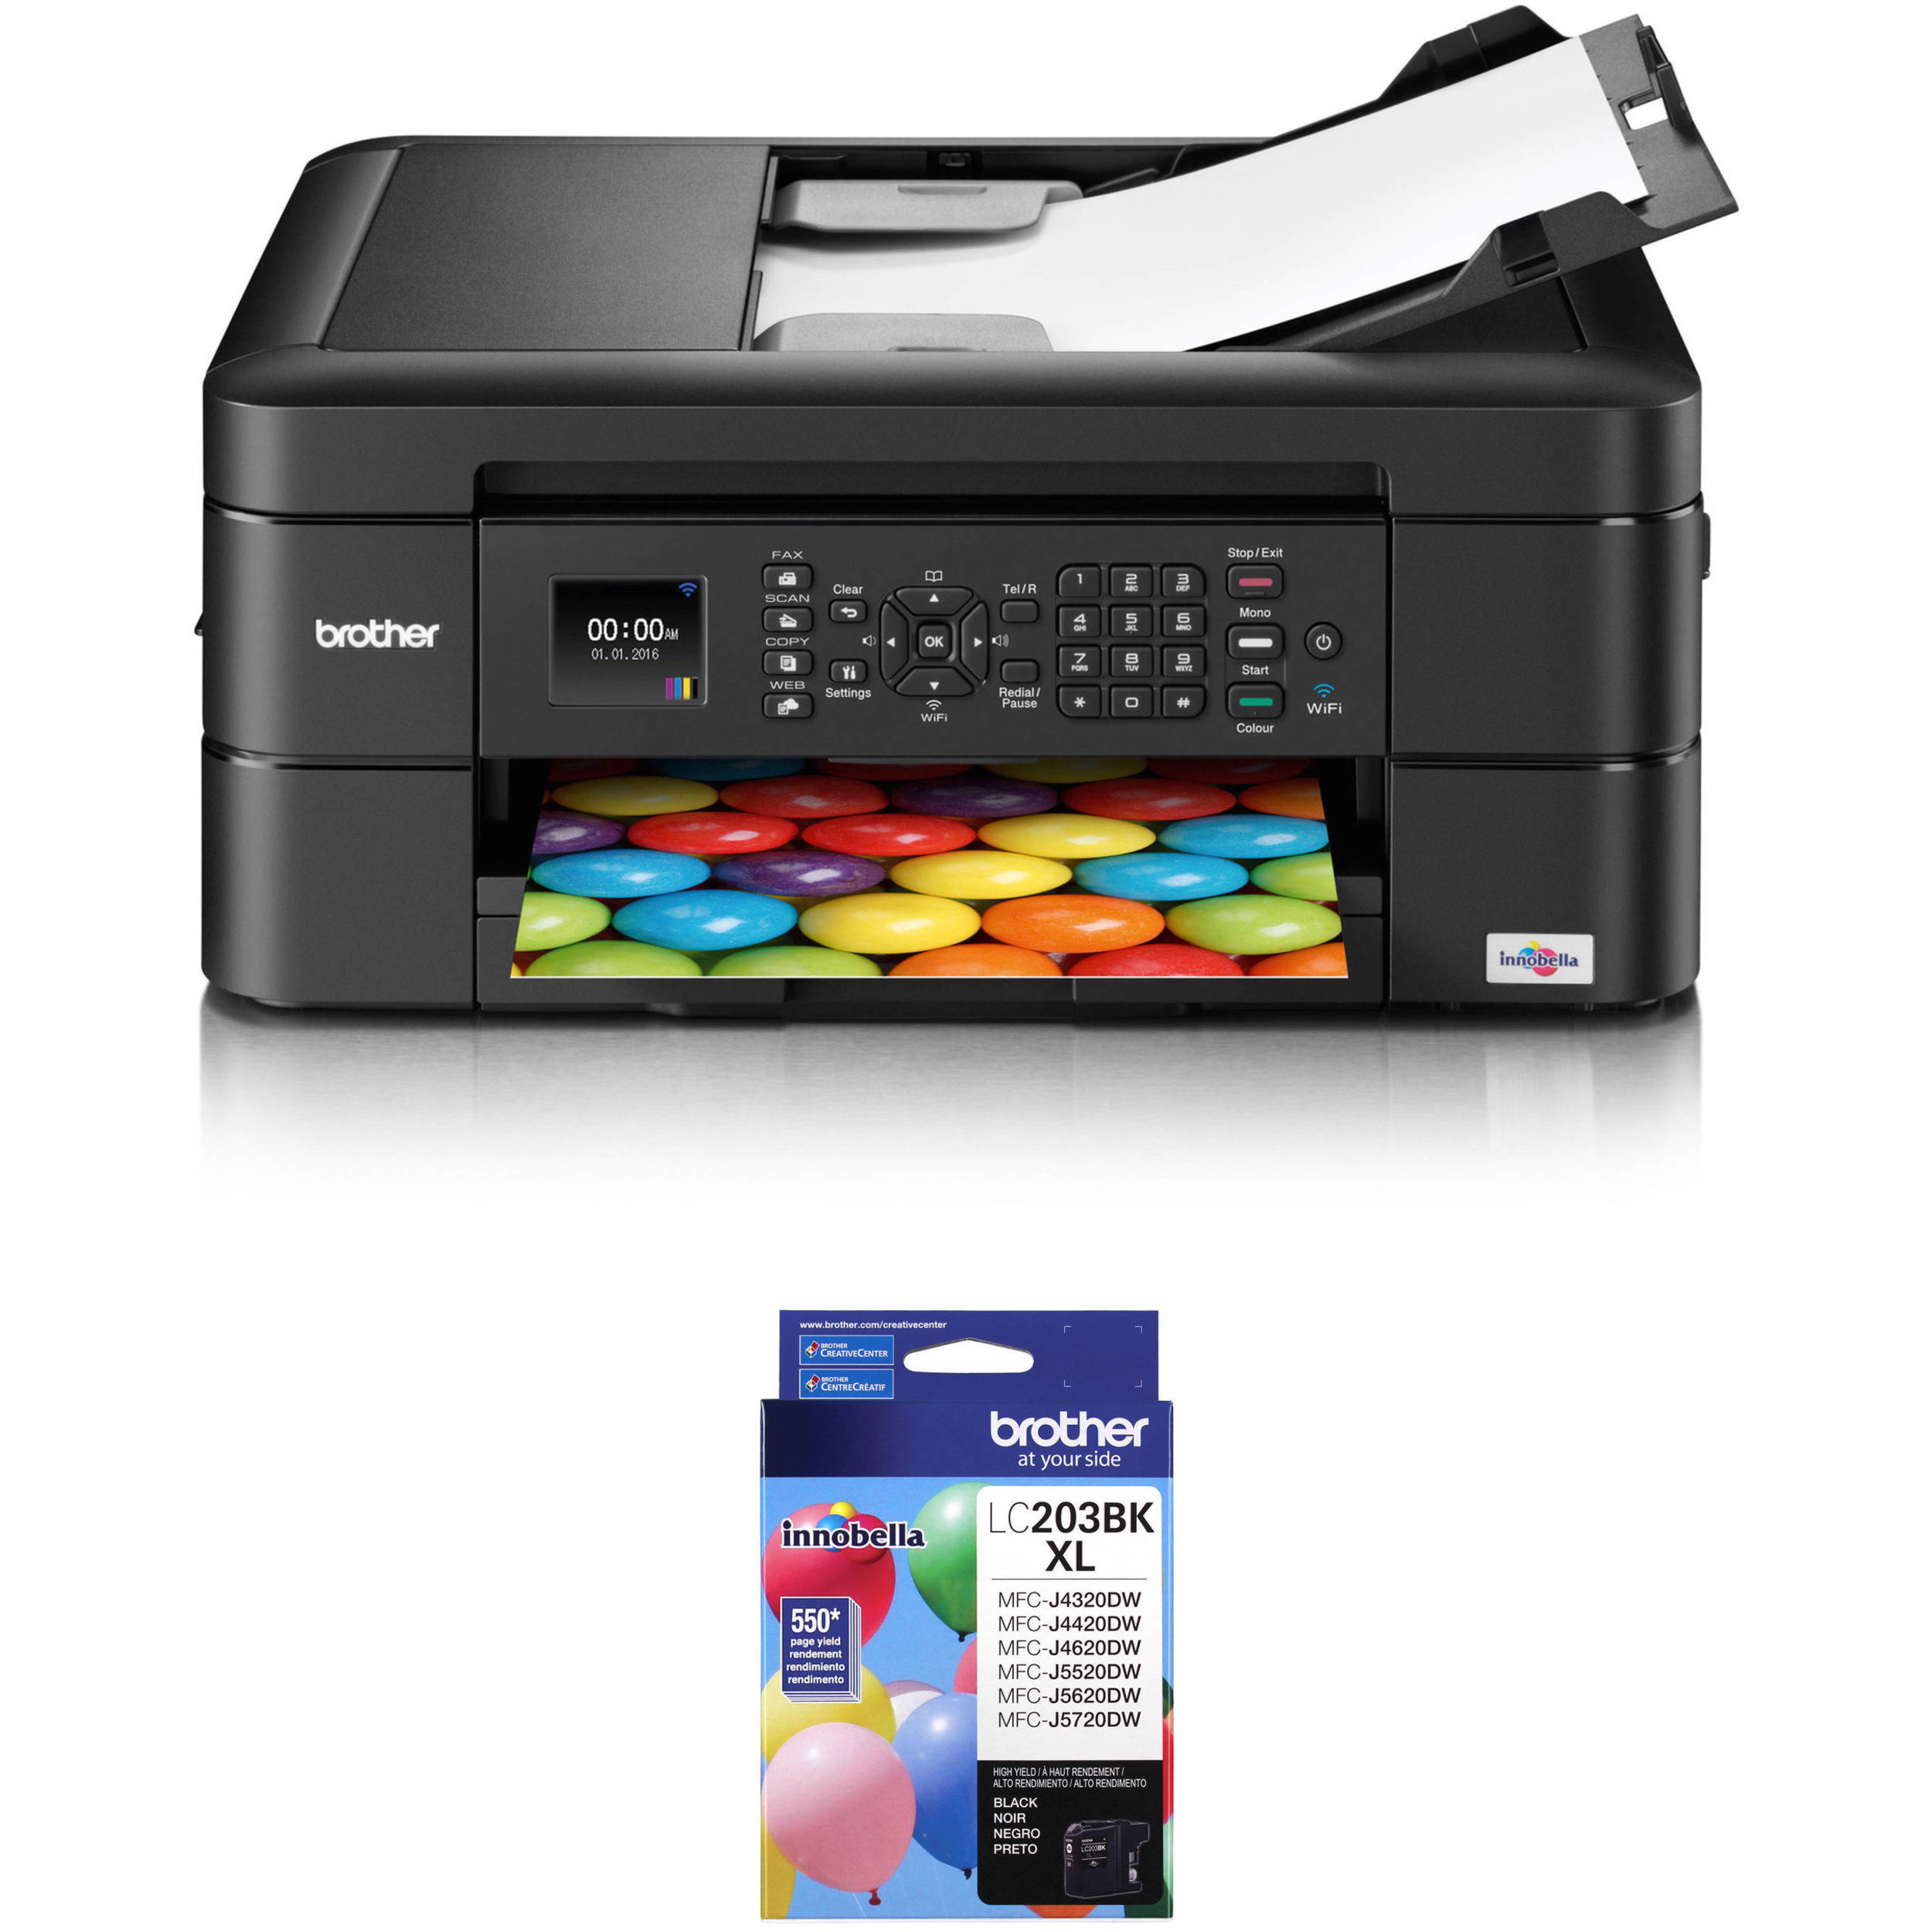 Brother WorkSmart Series MFC J460DW All In One Inkjet Printer With Additional High